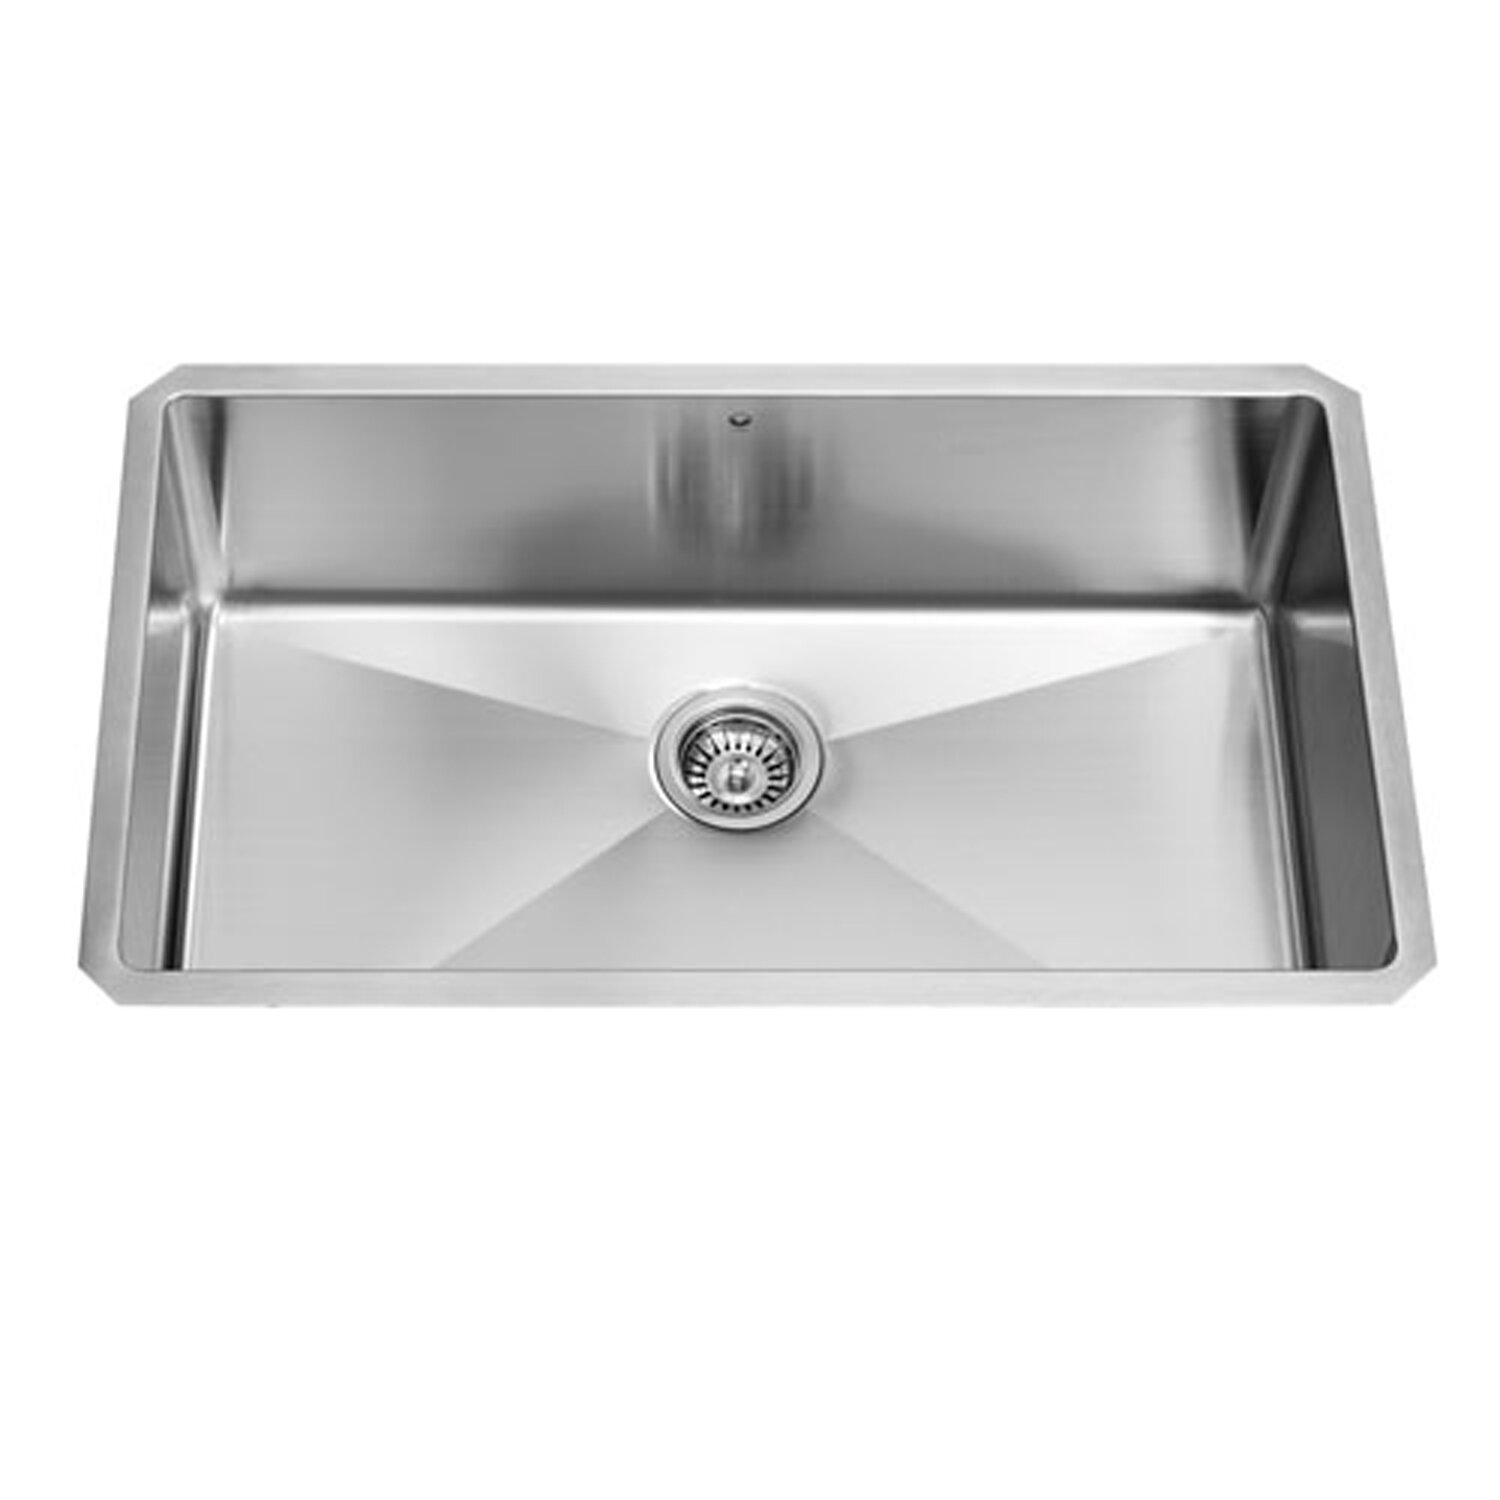 kitchen sinks single bowl vigo 32 inch undermount single bowl 16 stainless 6090